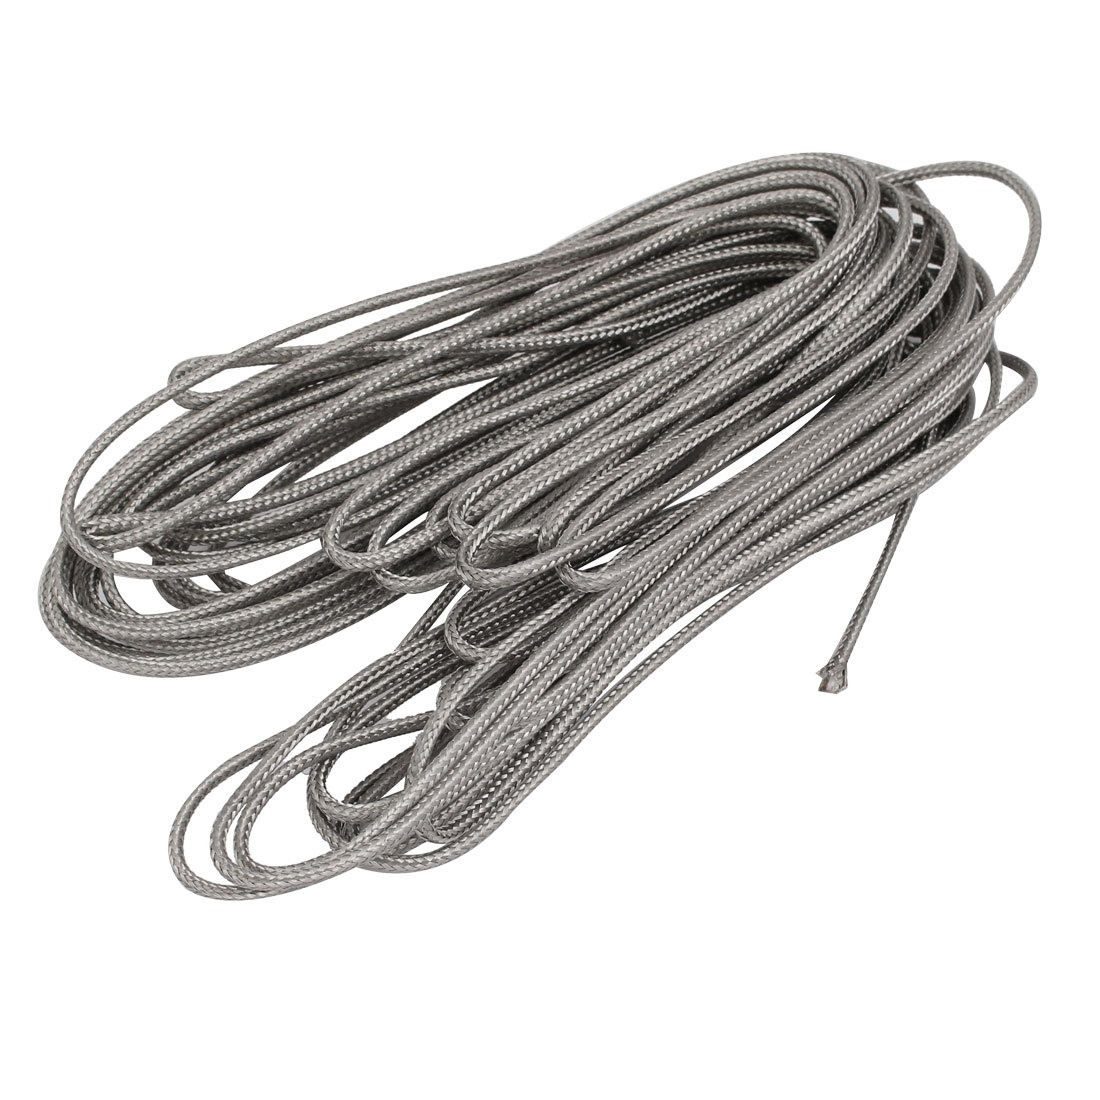 uxcell 9 Meters 2mm Dia Stainless Steel Wire for Thermocouple Sensor